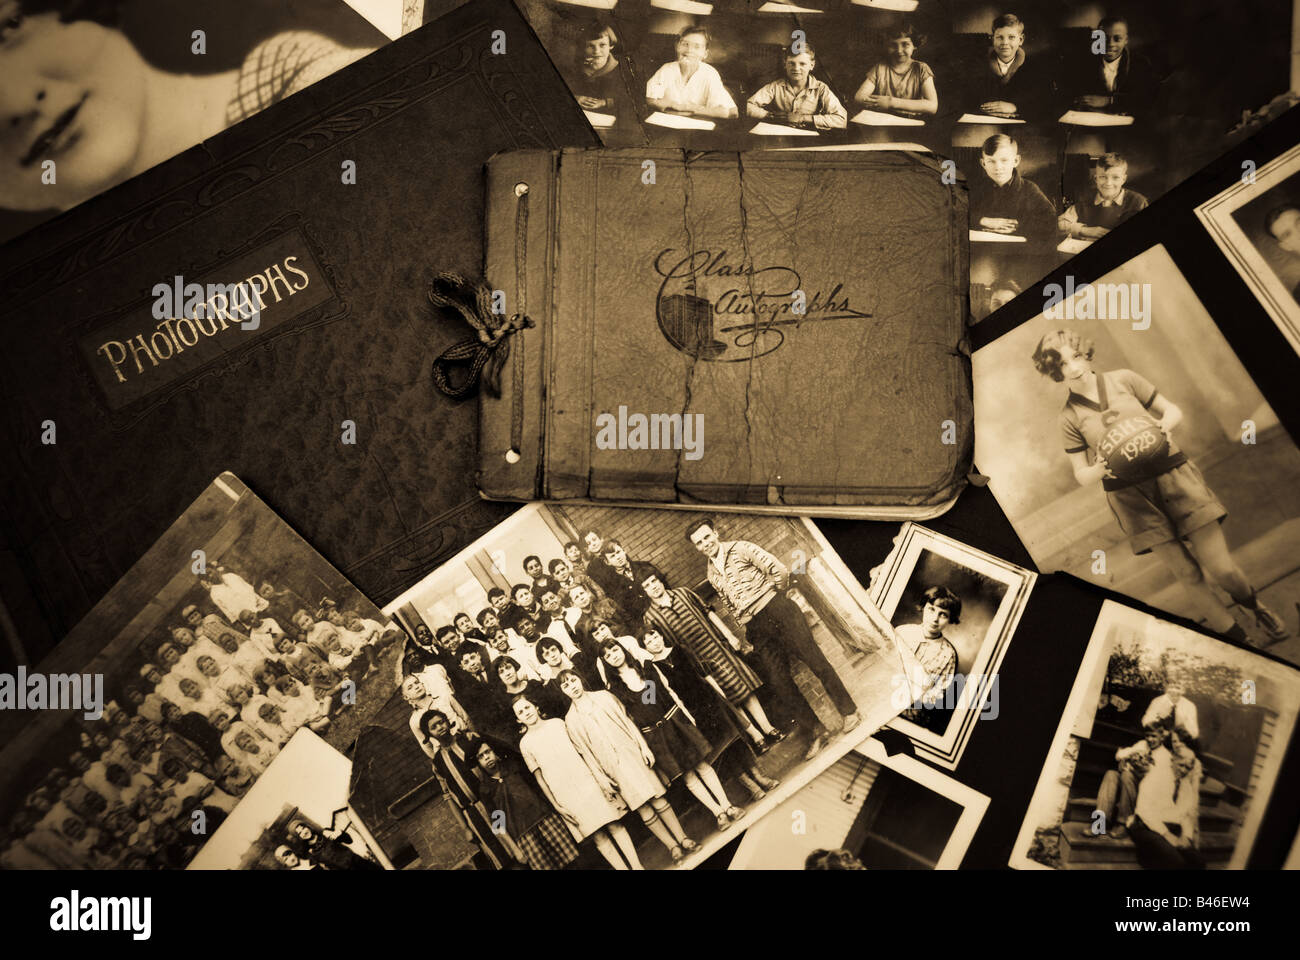 A collection of vintage class photos with an antique photo album and class autograph book - Stock Image